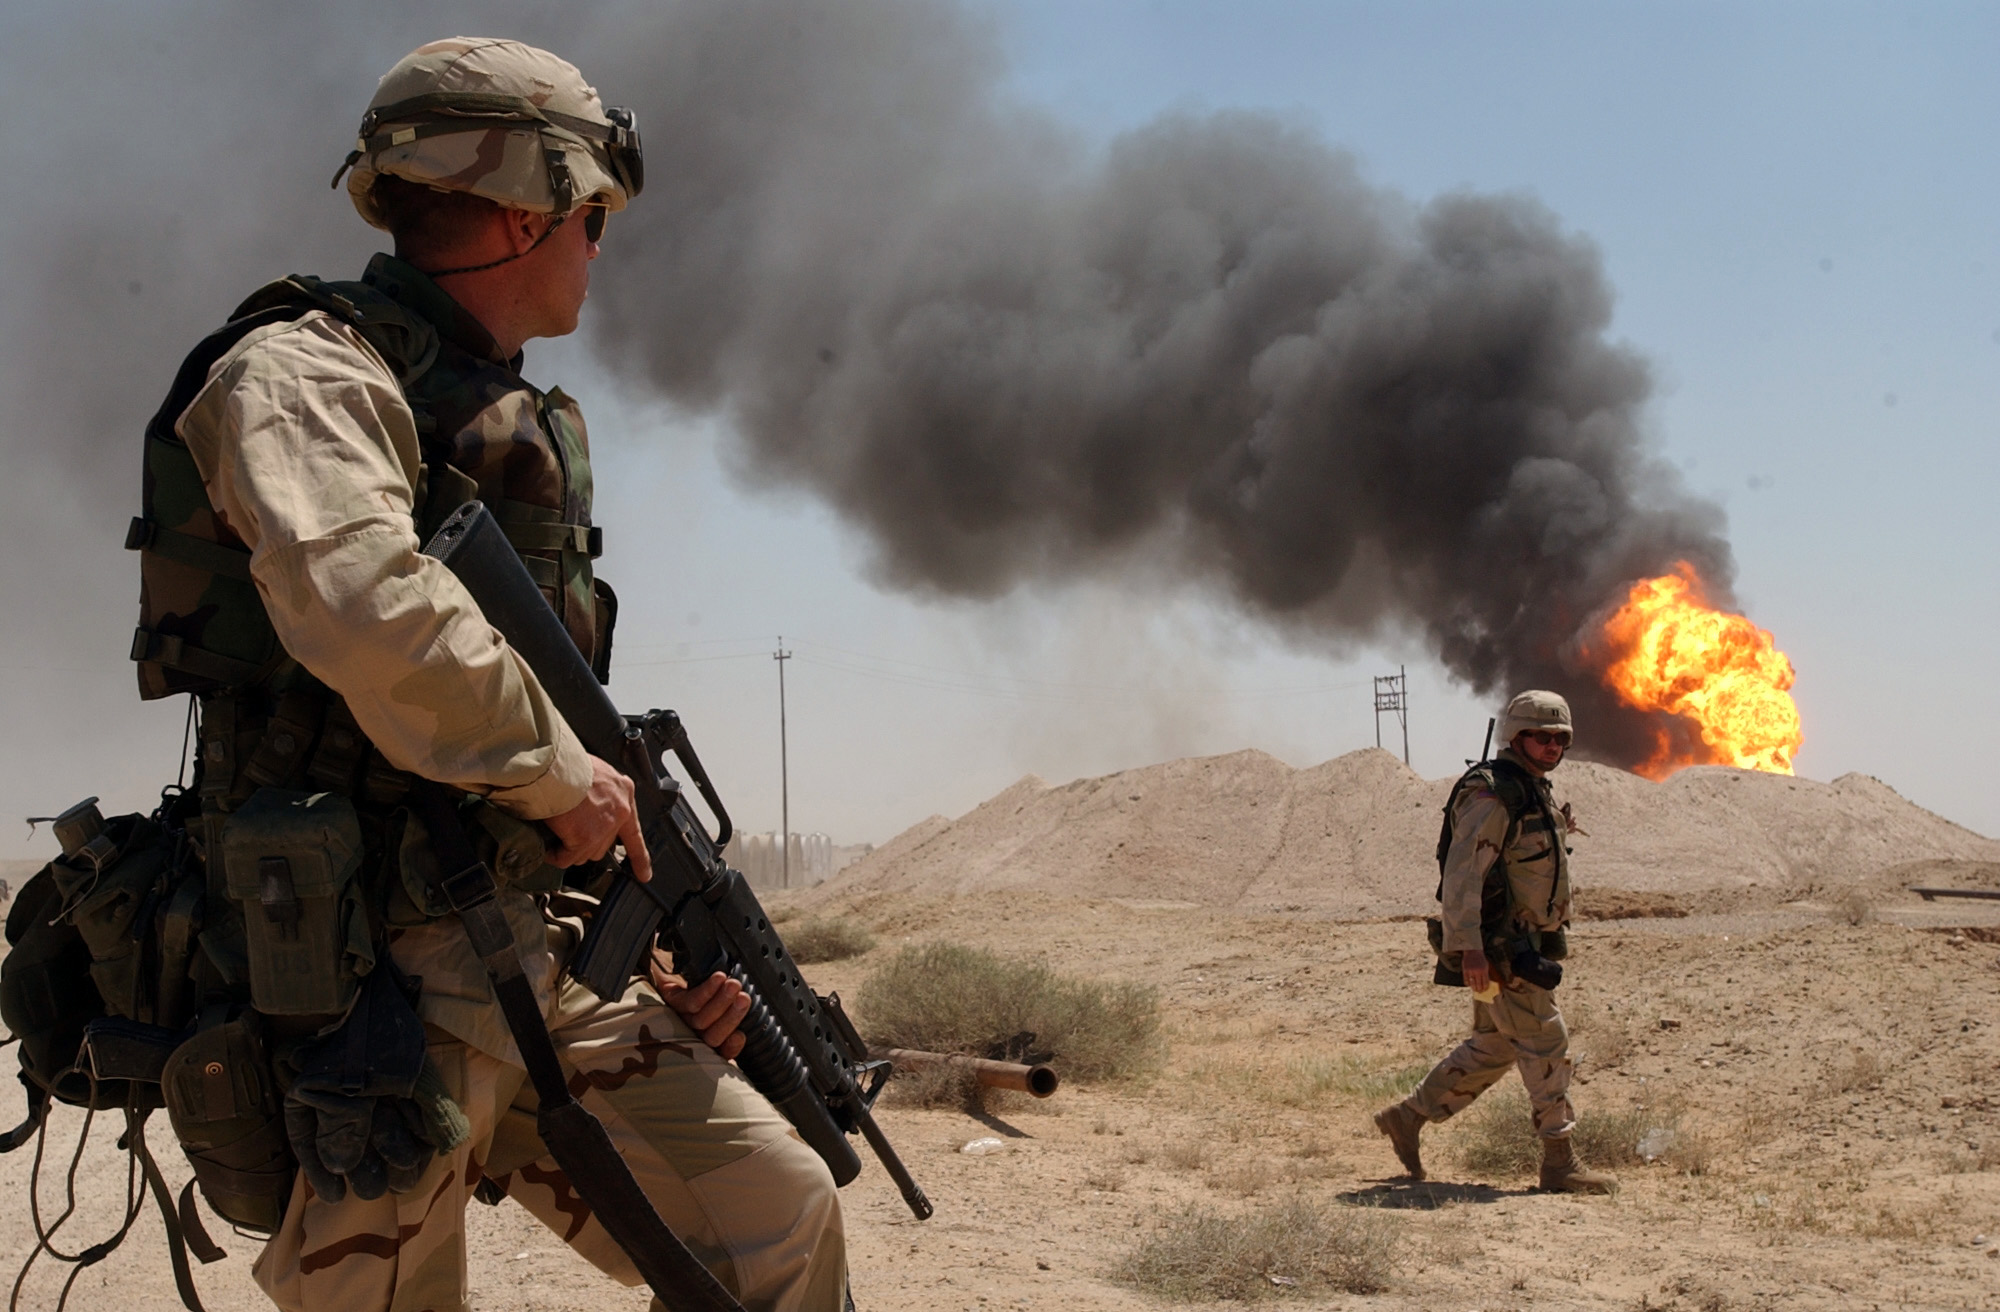 usa iraq war A guide to the united states' history of recognition, diplomatic, and consular relations war i, the united states united states of america recognizes iraq.